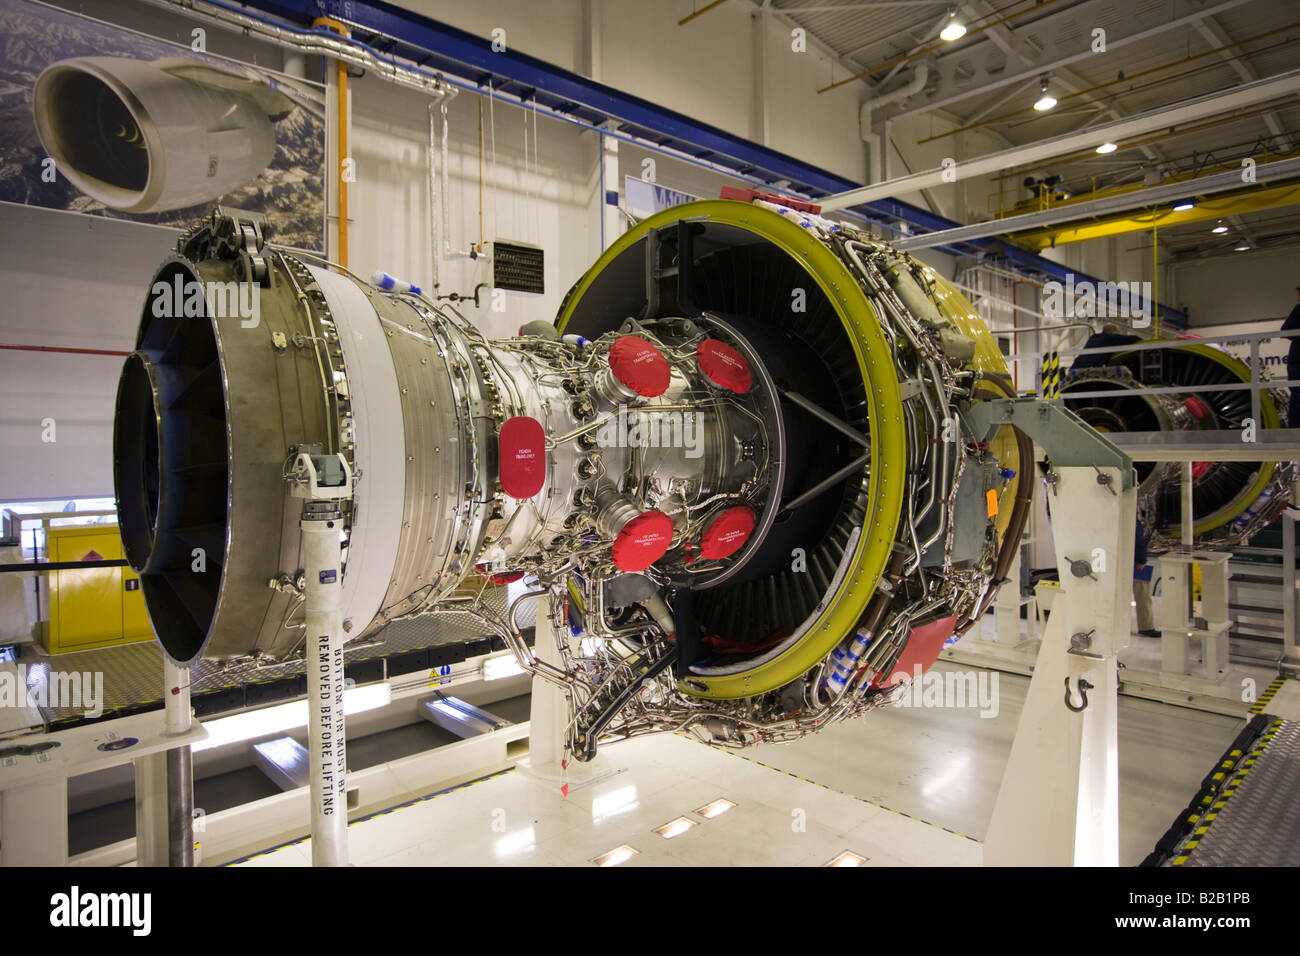 Rolls Royce jet engine production factory Derbyshire United Kingdom - Stock Image